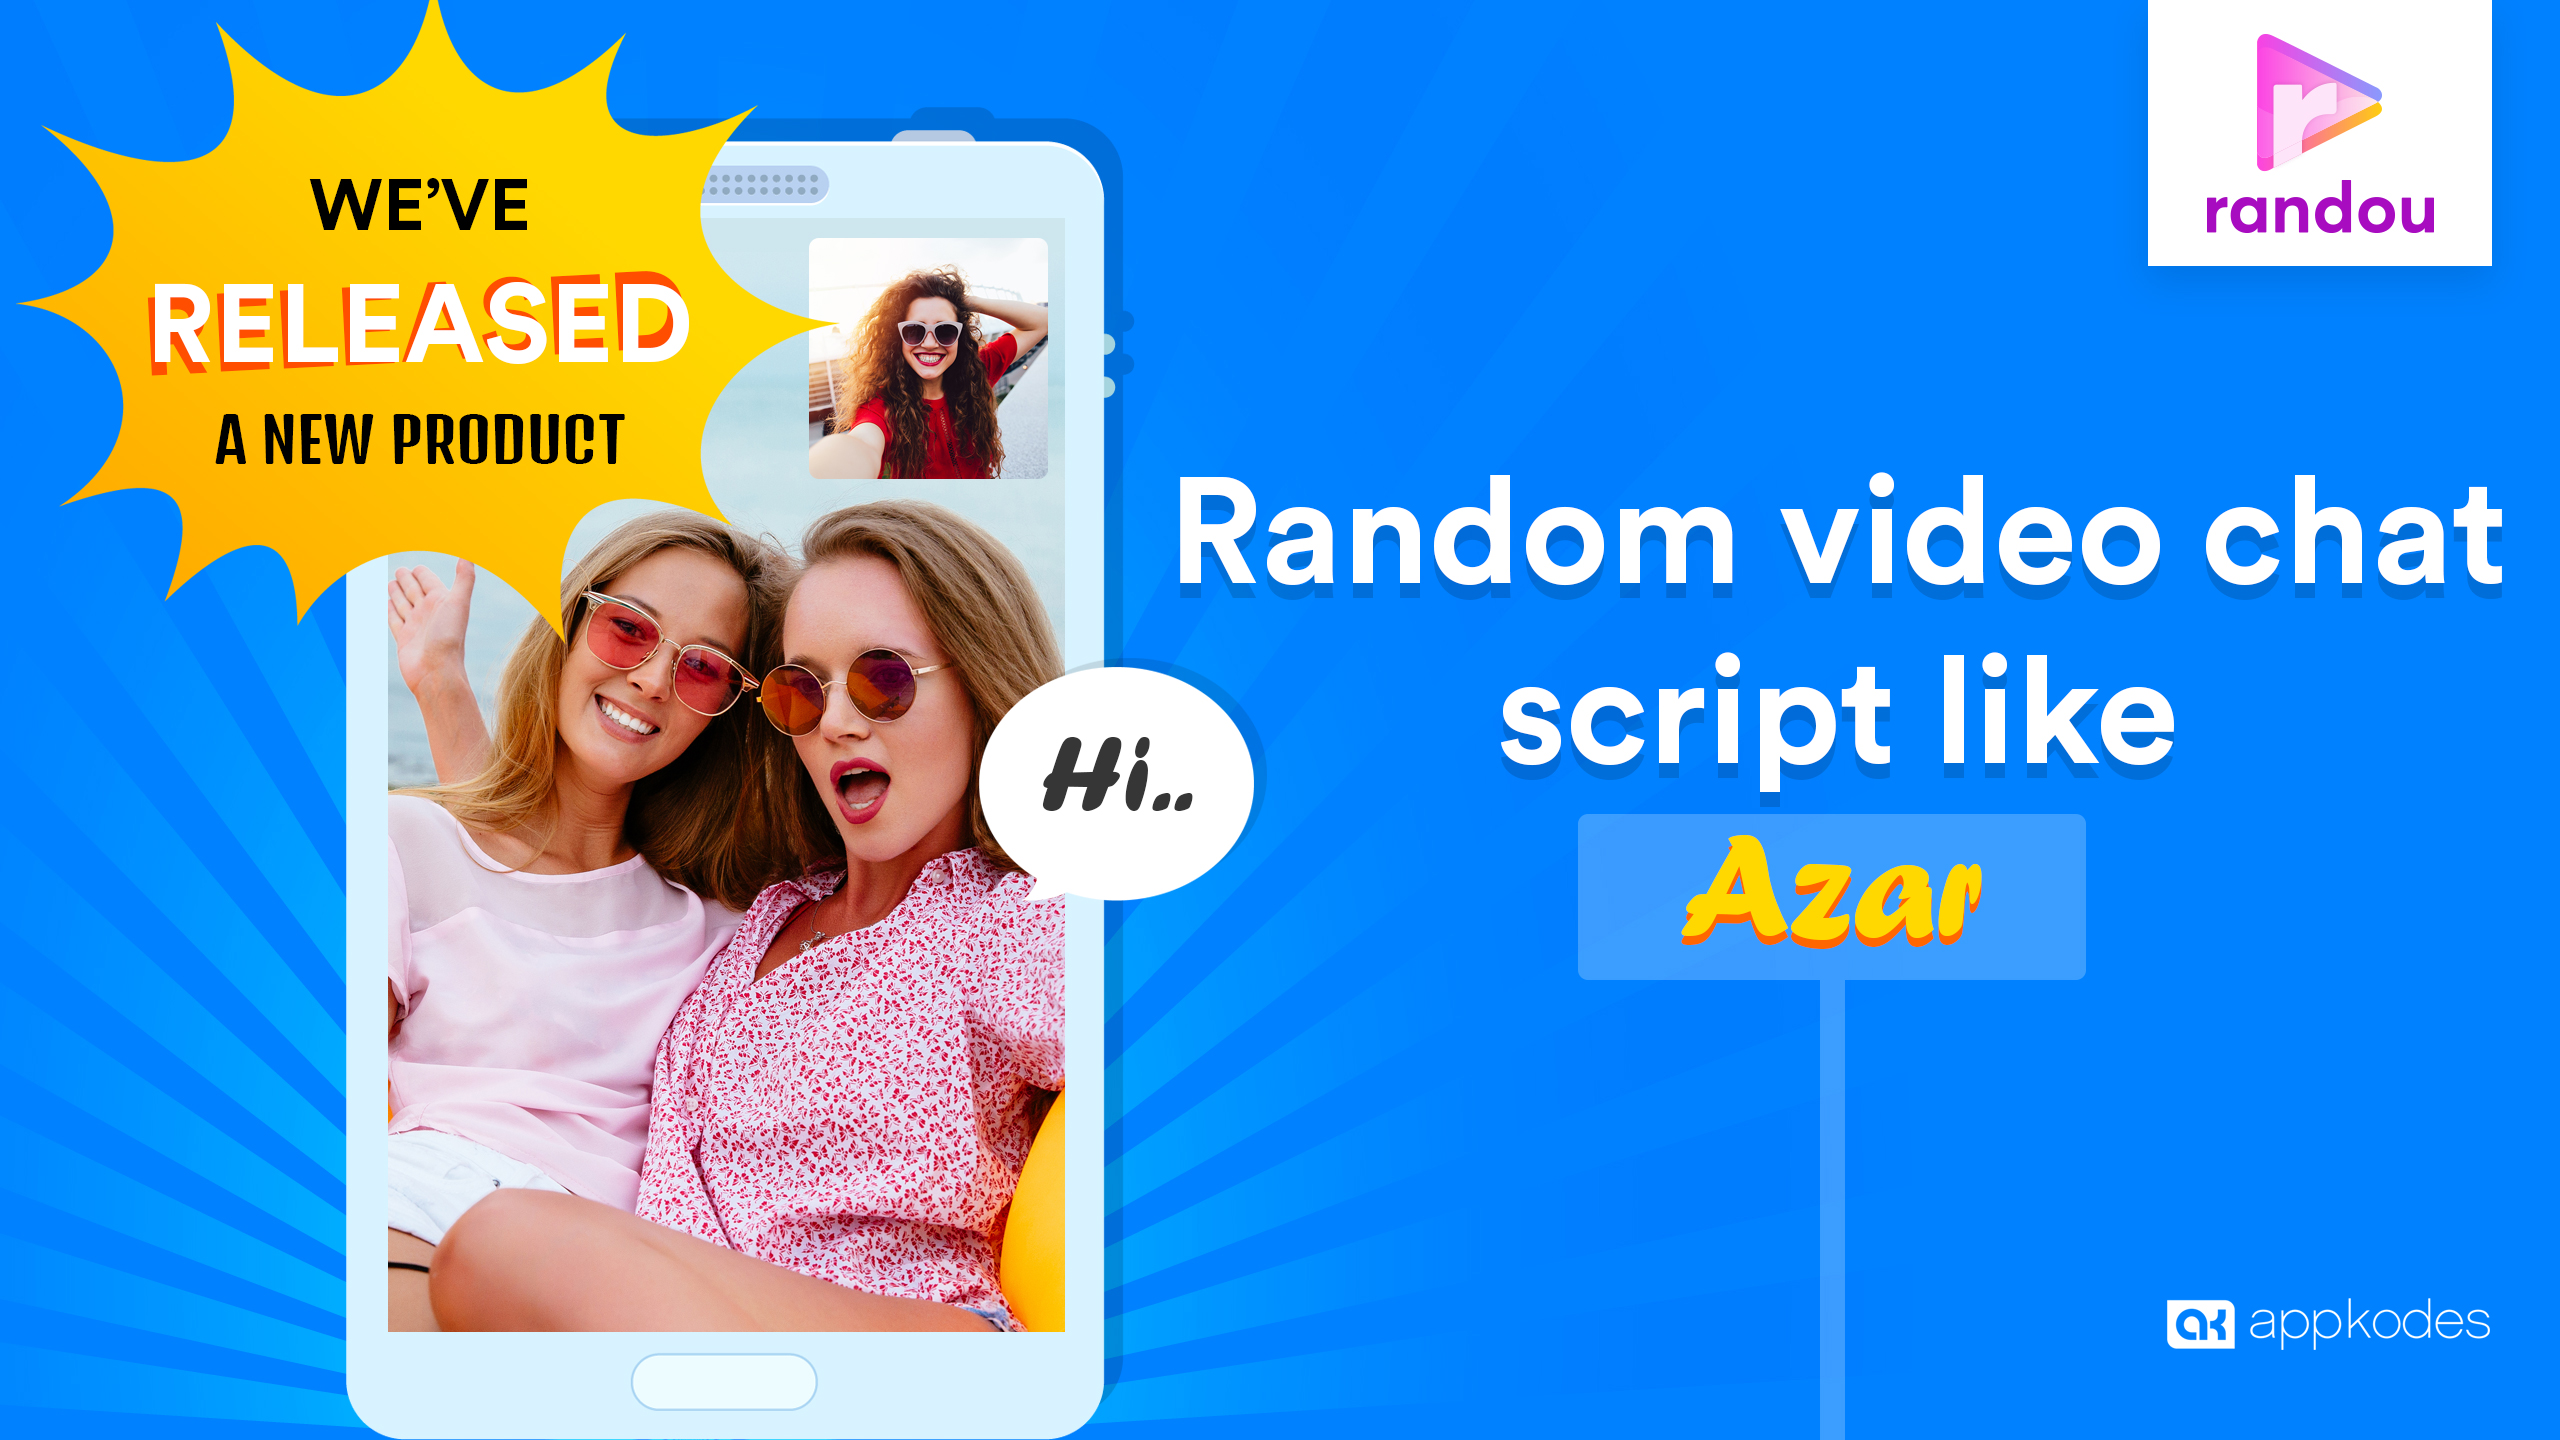 https://appkodes.com/azar-clone-random-video-chat-script/?utm_medium=randou-homepage&utm_source=script-directory&utm_campaign=u5 website snapshot